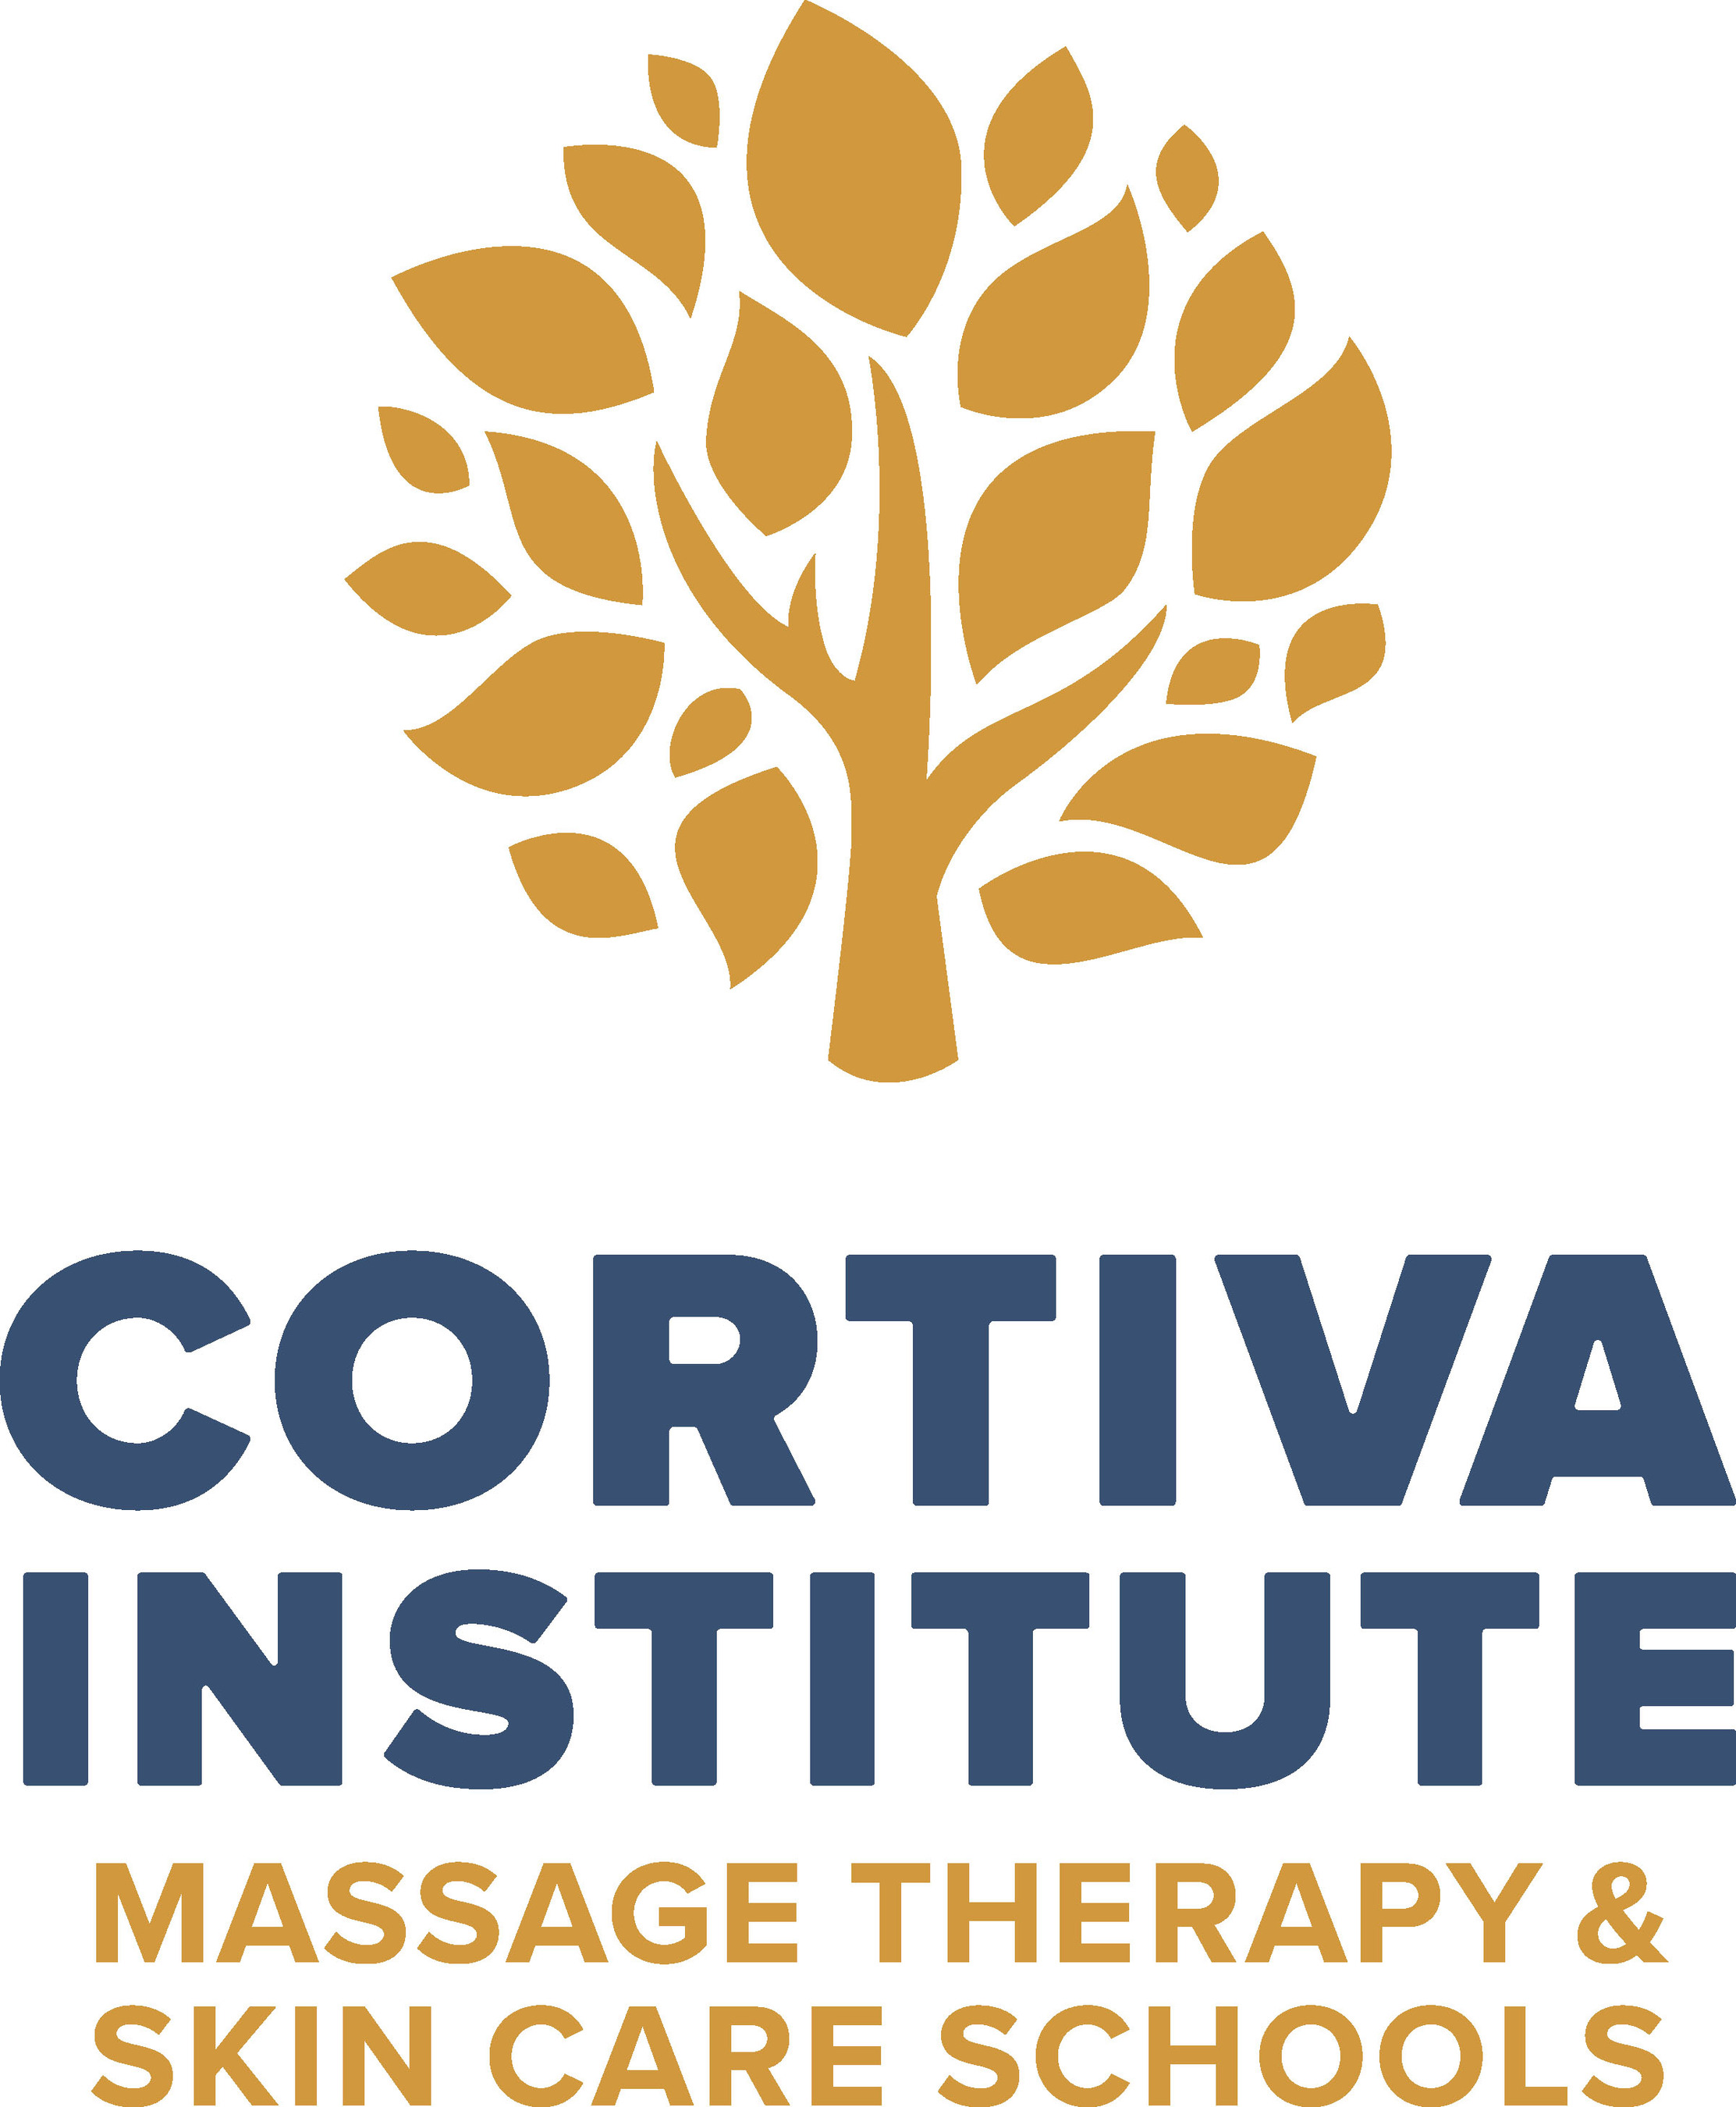 Cortiva Institute Logo (PRNewsfoto/Cortiva Institute)